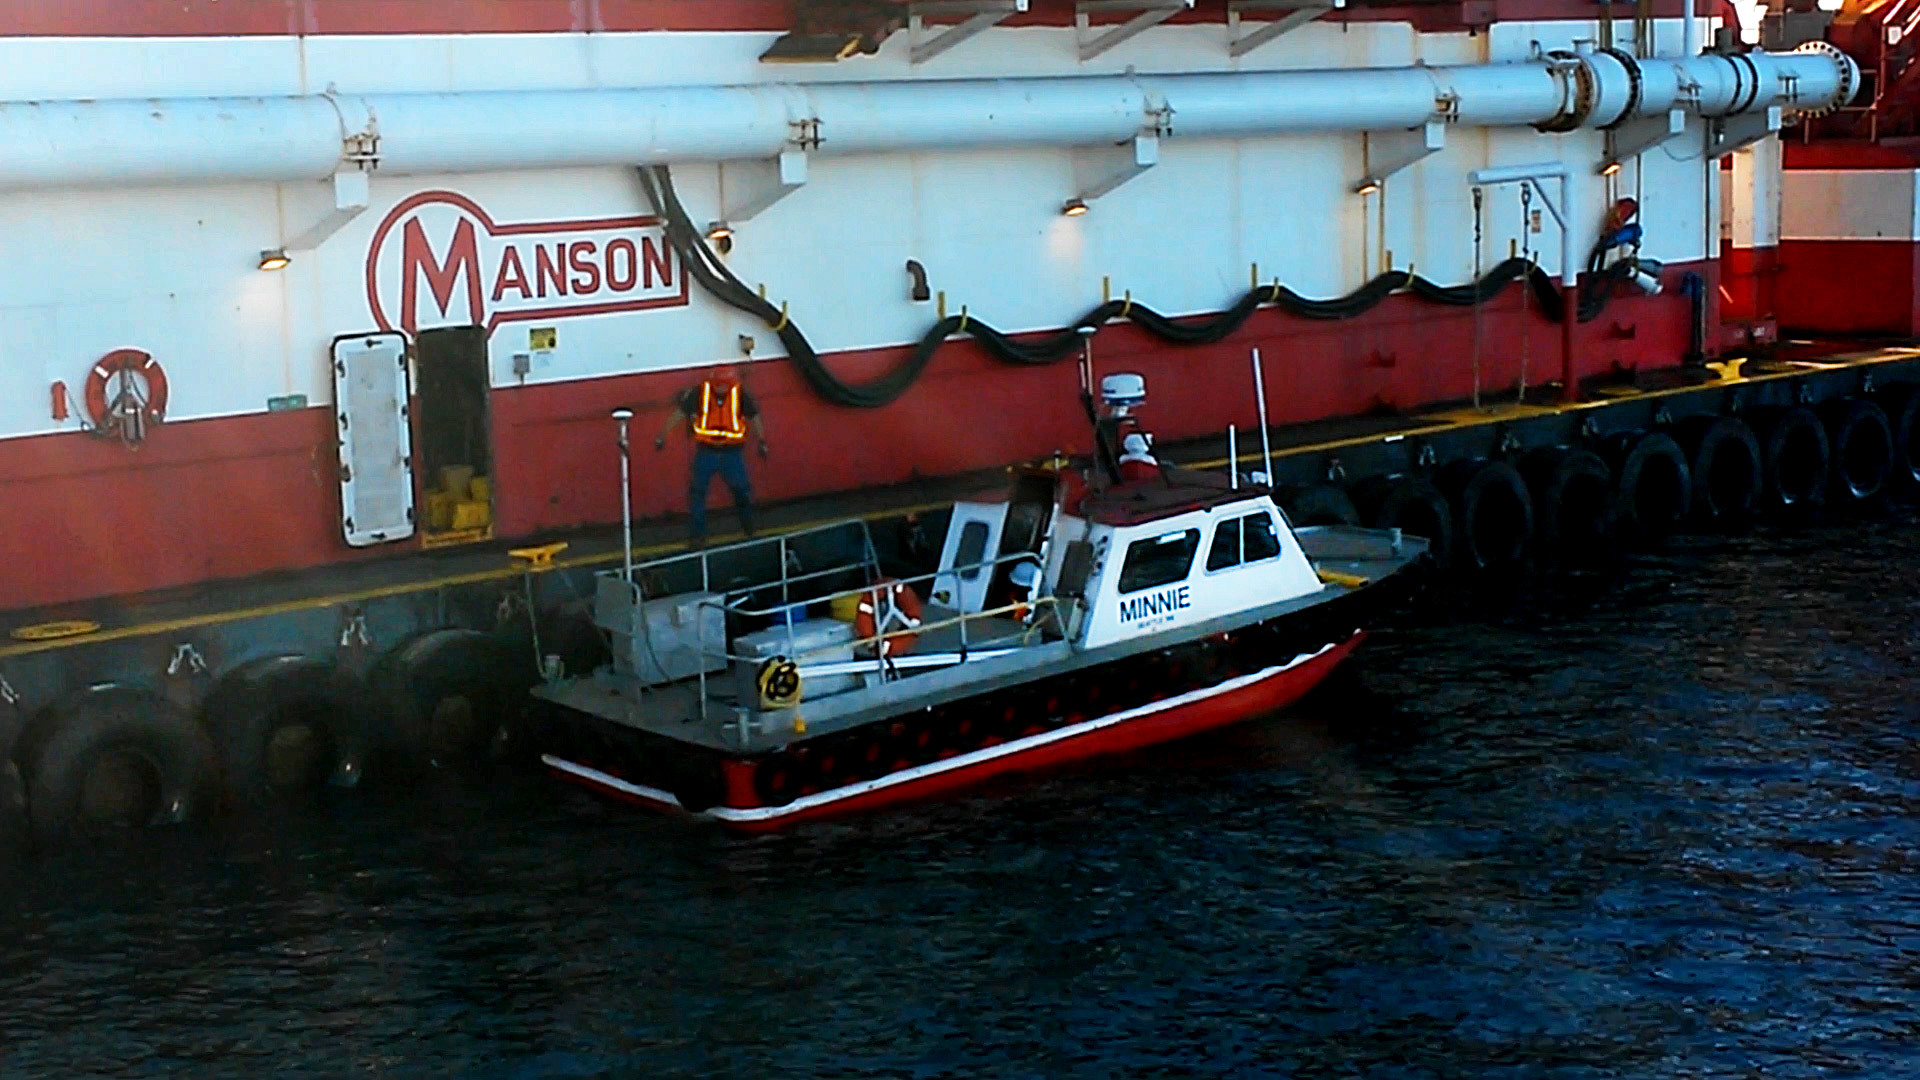 JURY VERDICT: Maritime Lawsuit - Injured while working on a